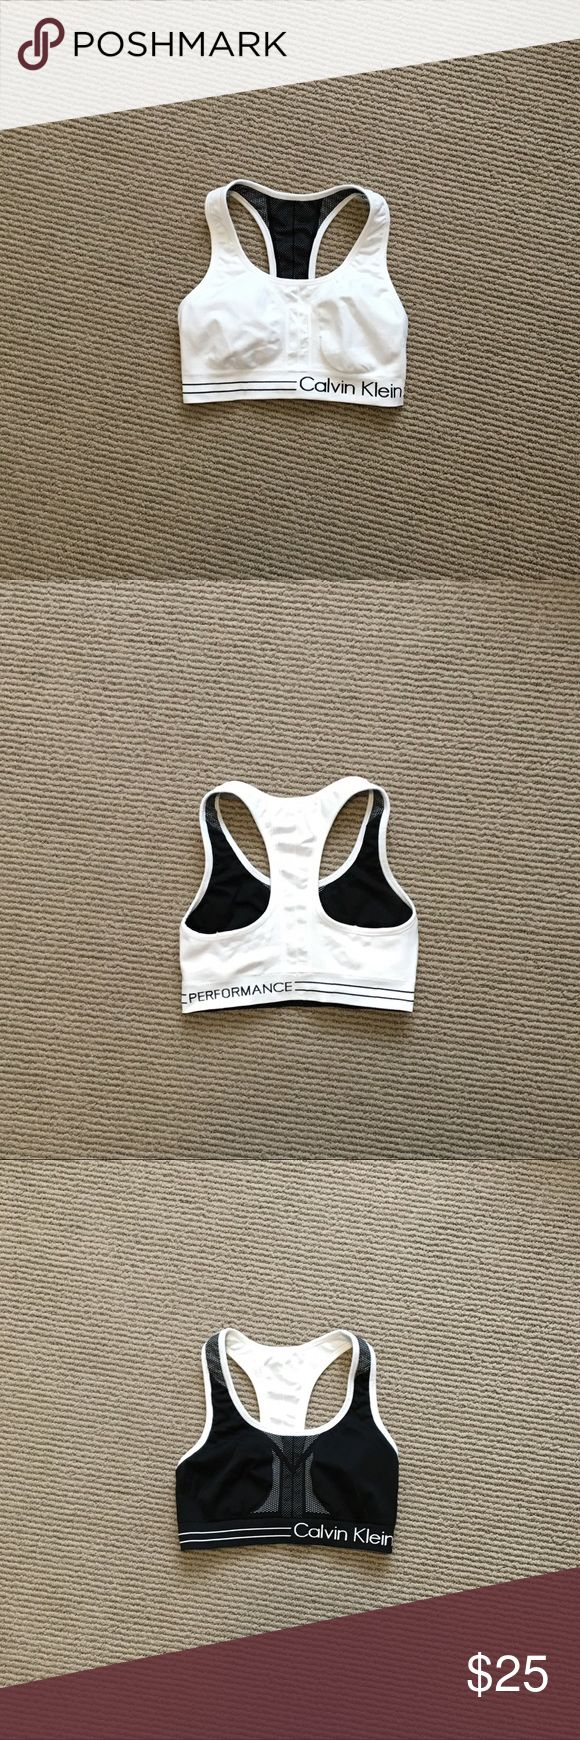 🎈SALE🎈 Calvin Klein Reversible Sports Bra Black and white reversible sports bra by Calvin Klein. In great used condition. Incredibly comfortable with a good amount of stretch. No stains or rips. Calvin Klein Intimates & Sleepwear Bras